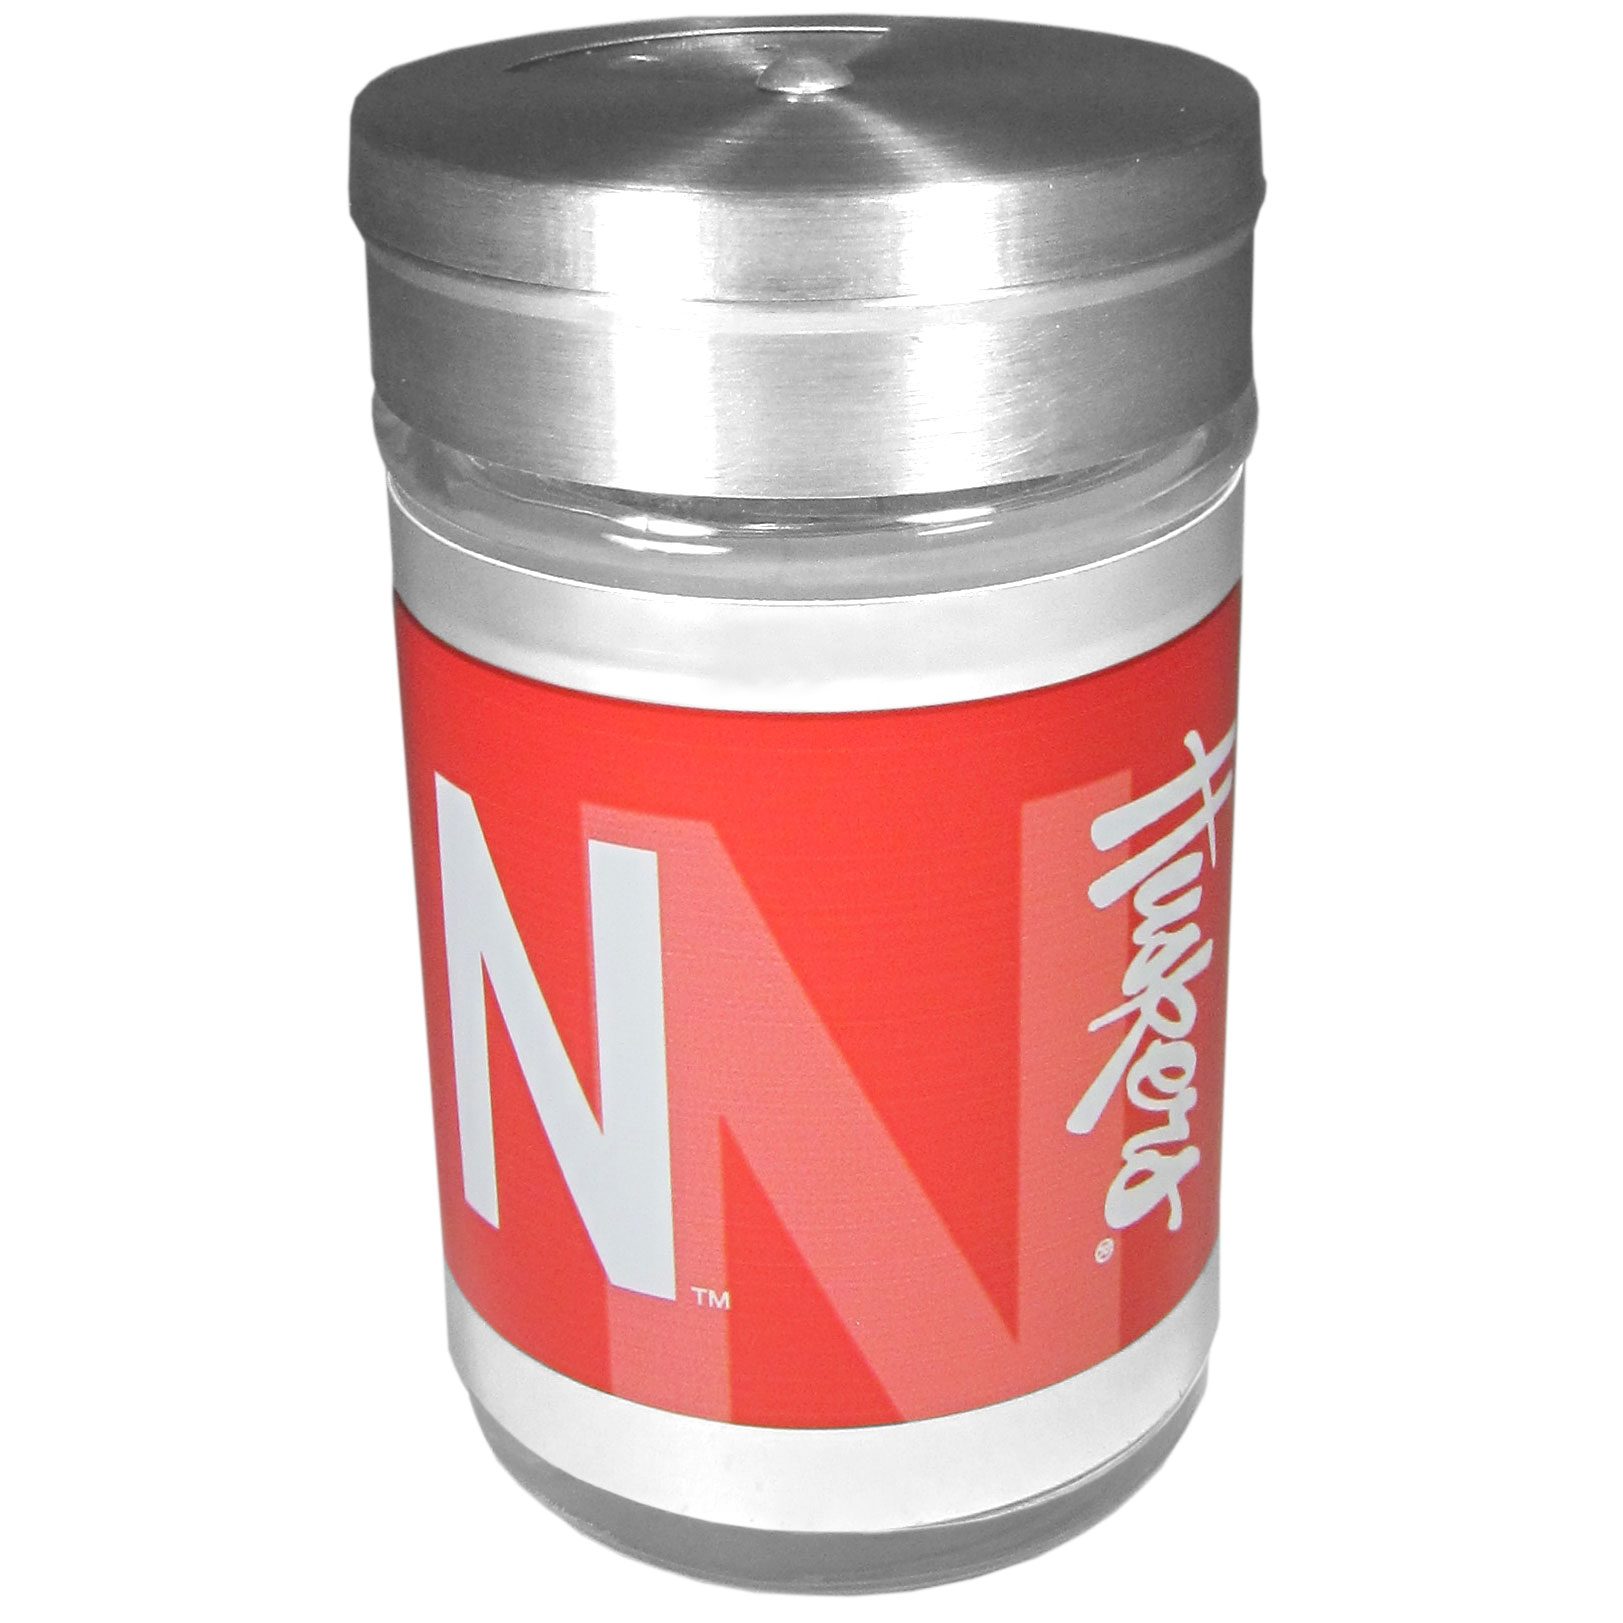 Nebraska Cornhuskers Tailgater Season Shakers - Spice it up with our Nebraska Cornhuskers tailgater season shakers! This compact shaker is 2 inch tall with a twist top that closes off the holes at the top making it perfect for travel preventing those messy spills. The shaker has wide holes perfect for keeping your pepper seeds or cheese toppings. The bright team graphics will make you the envy of the other fans while you are grilling up your tailgating goodies.